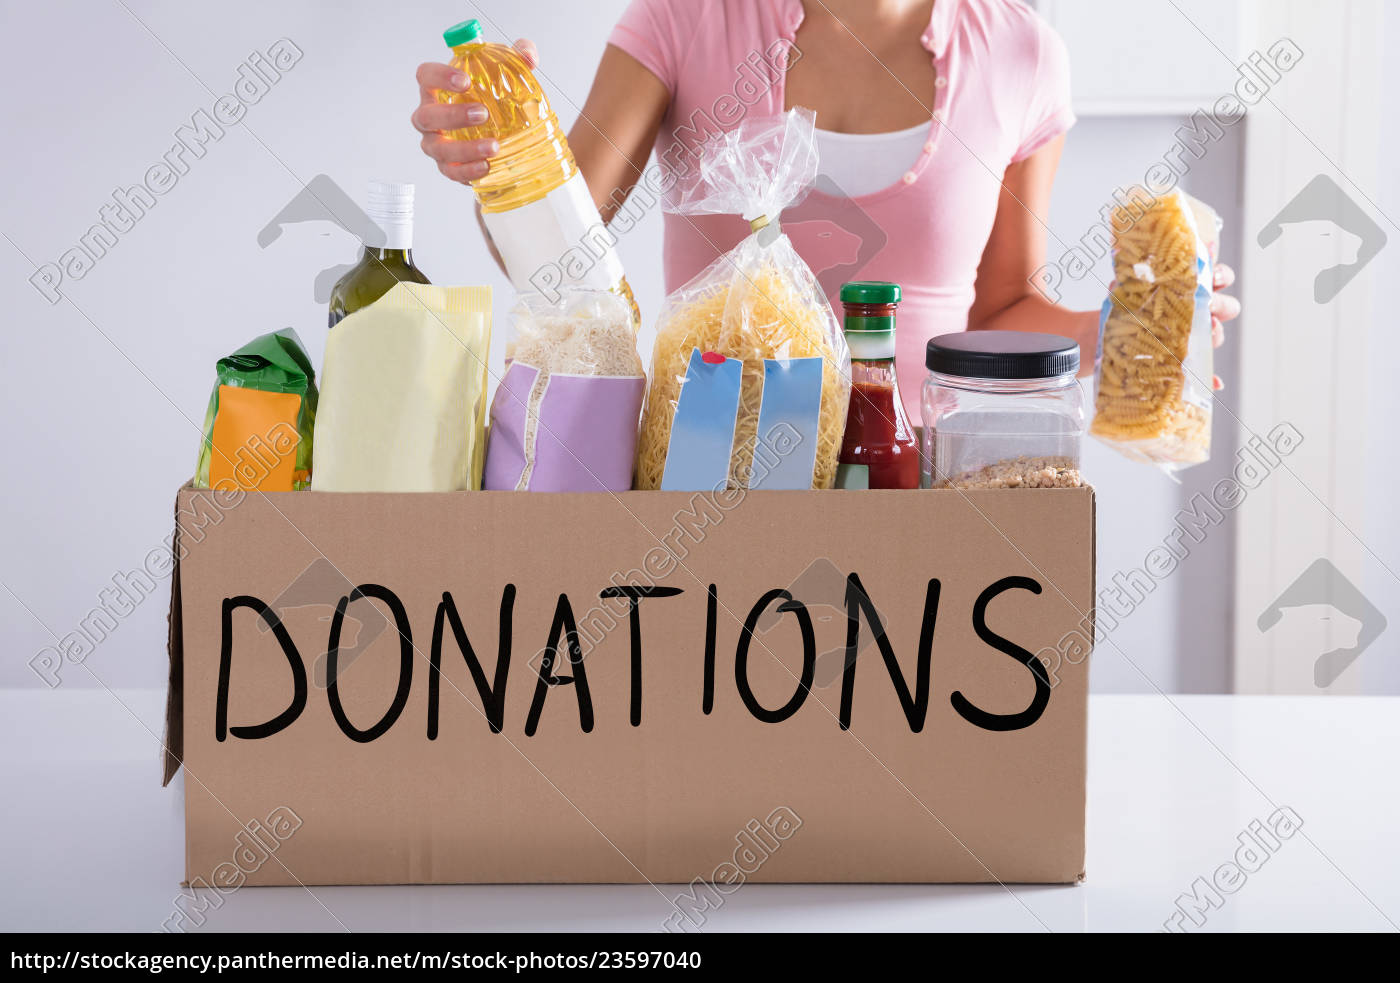 woman, putting, groceries, in, donation, box - 23597040